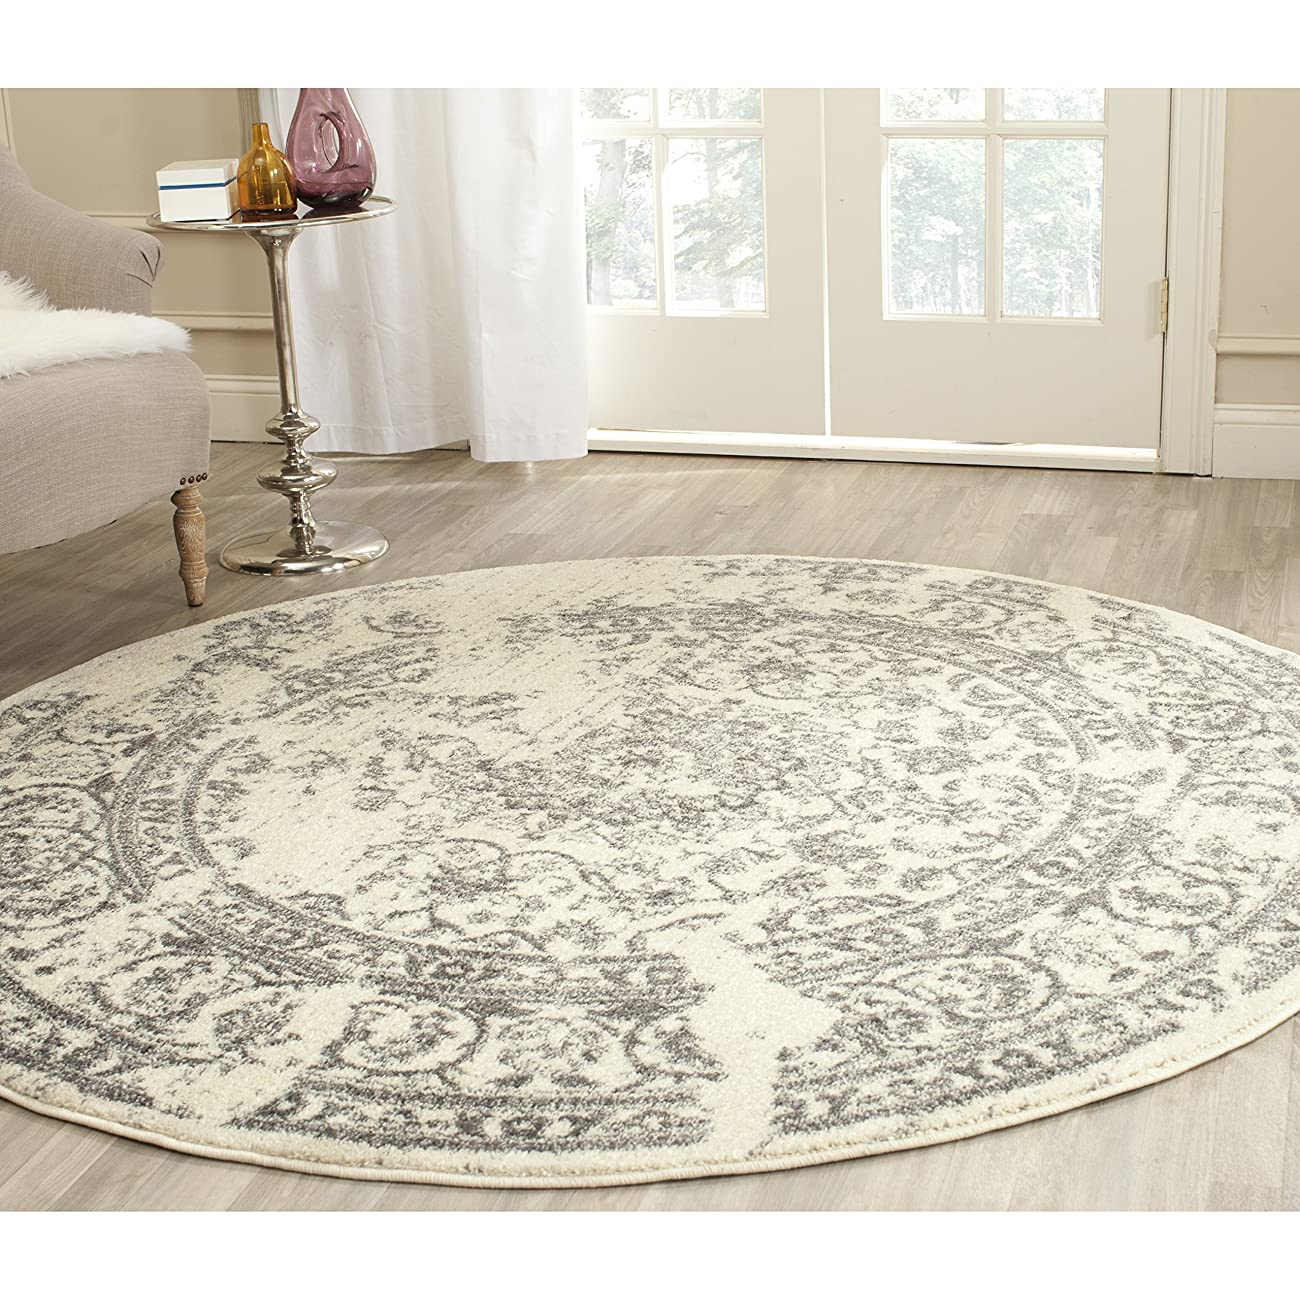 Safavieh Adirondack Collection ADR101B Ivory and Silver Oriental Vintage Round Area Rug (8' Diameter) 0